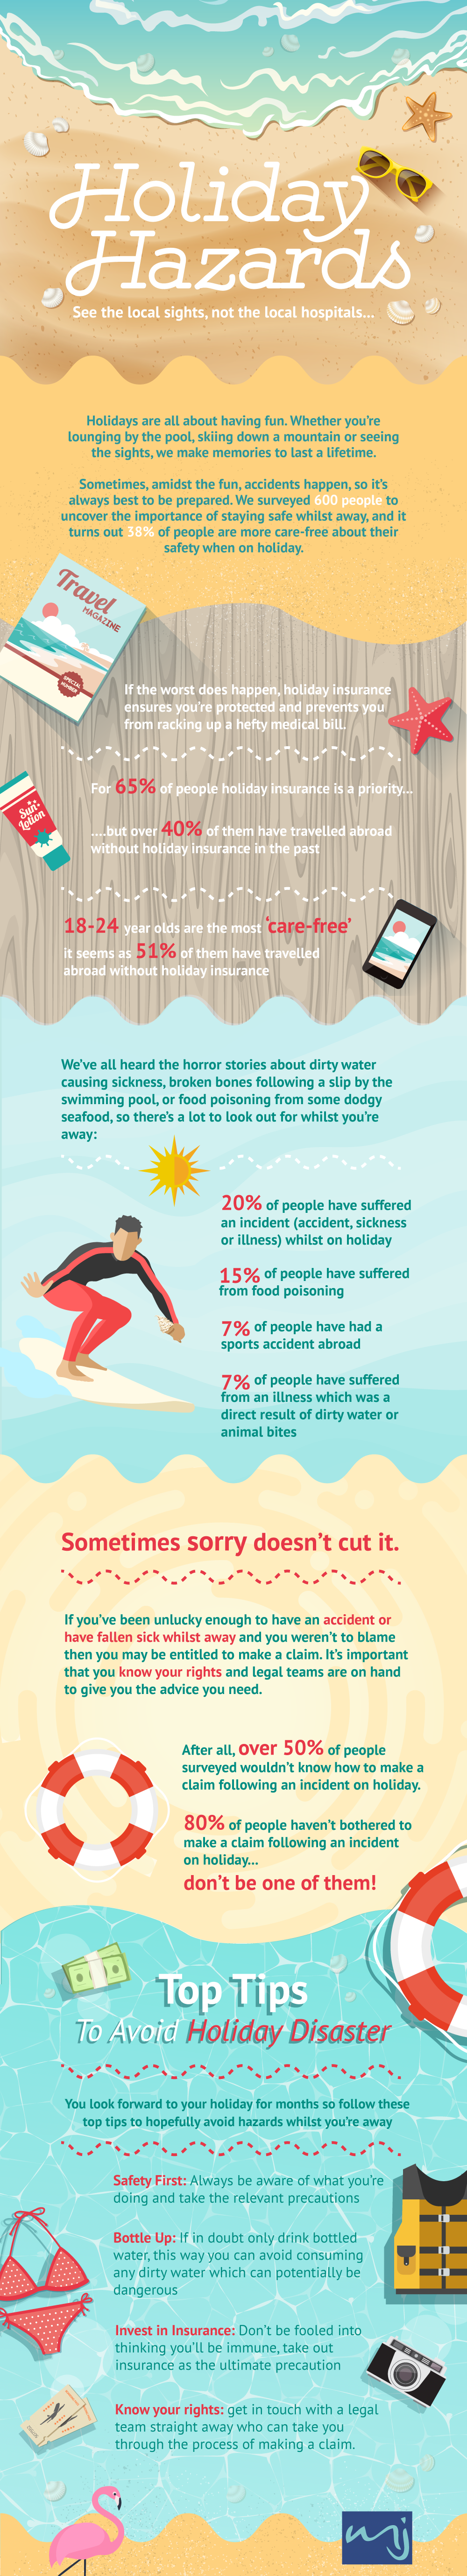 Stay protected on your Vactaion with Holiday Insurance - infographic